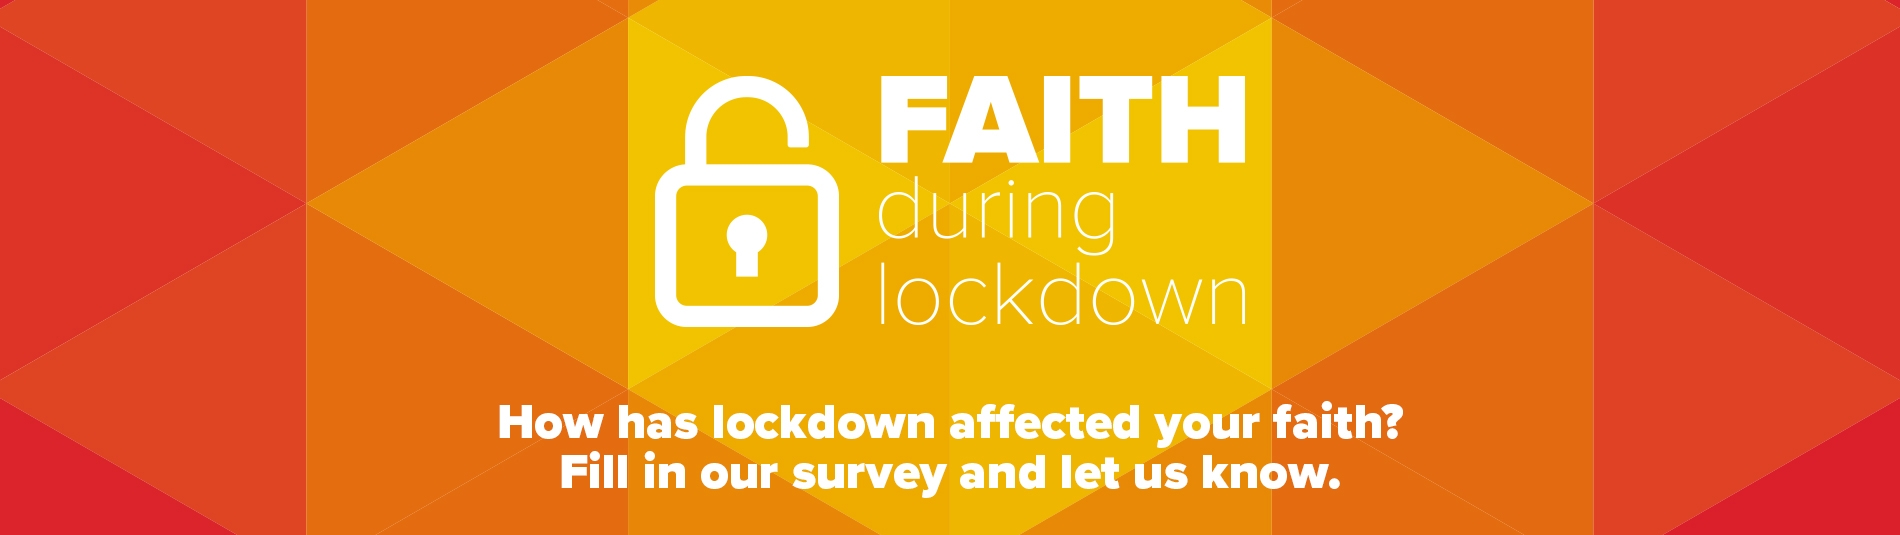 How has lockdown affected your faith?